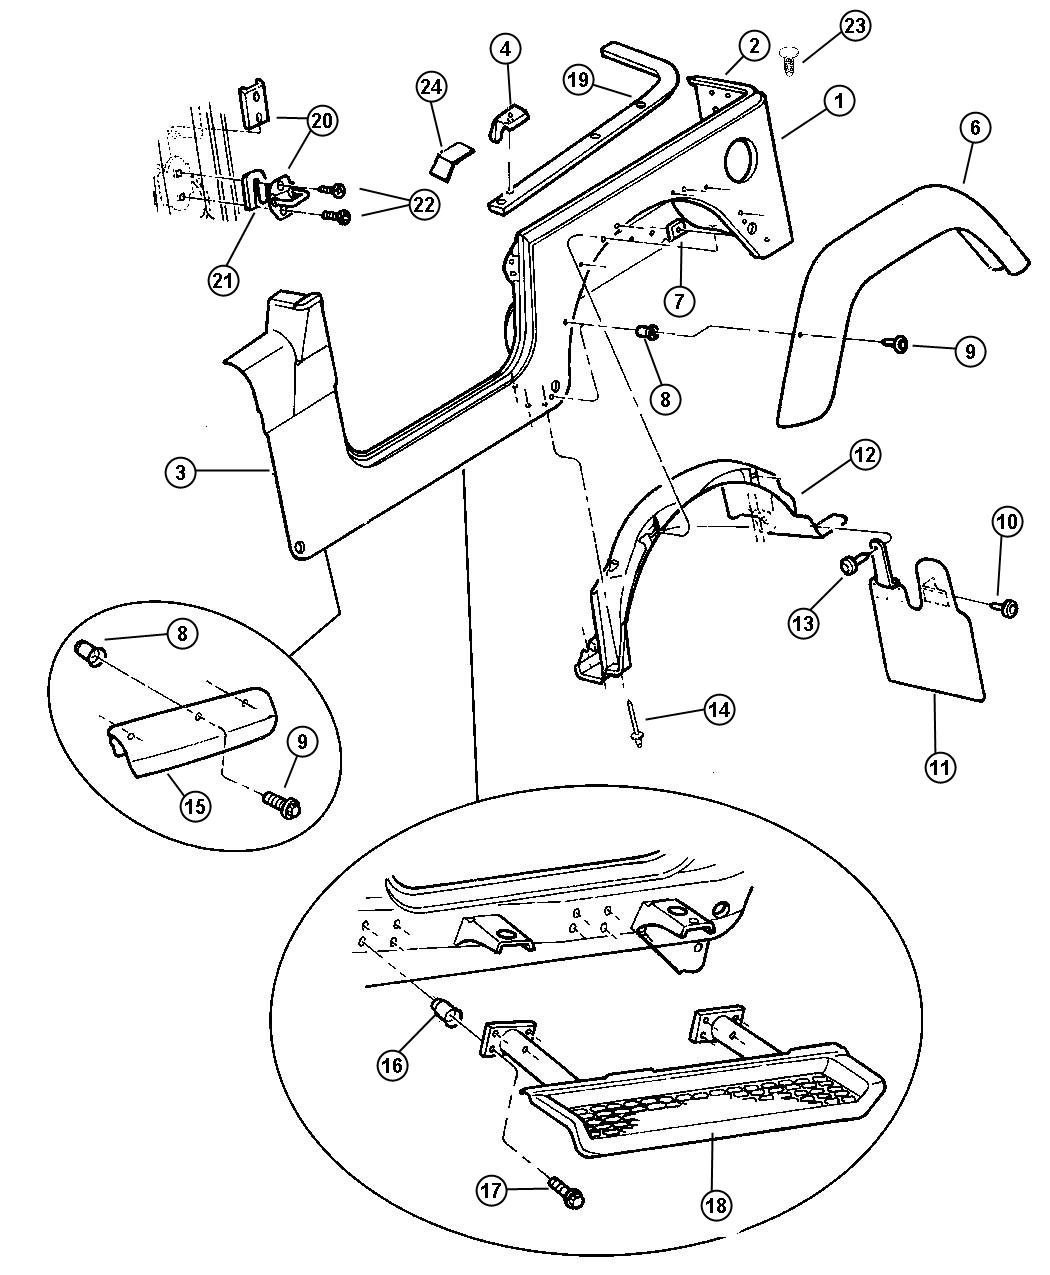 m14 parts diagram 2004 suzuki eiger wiring m1a free for you jeep wrangler interior door panels imageresizertool com 1903a3 list